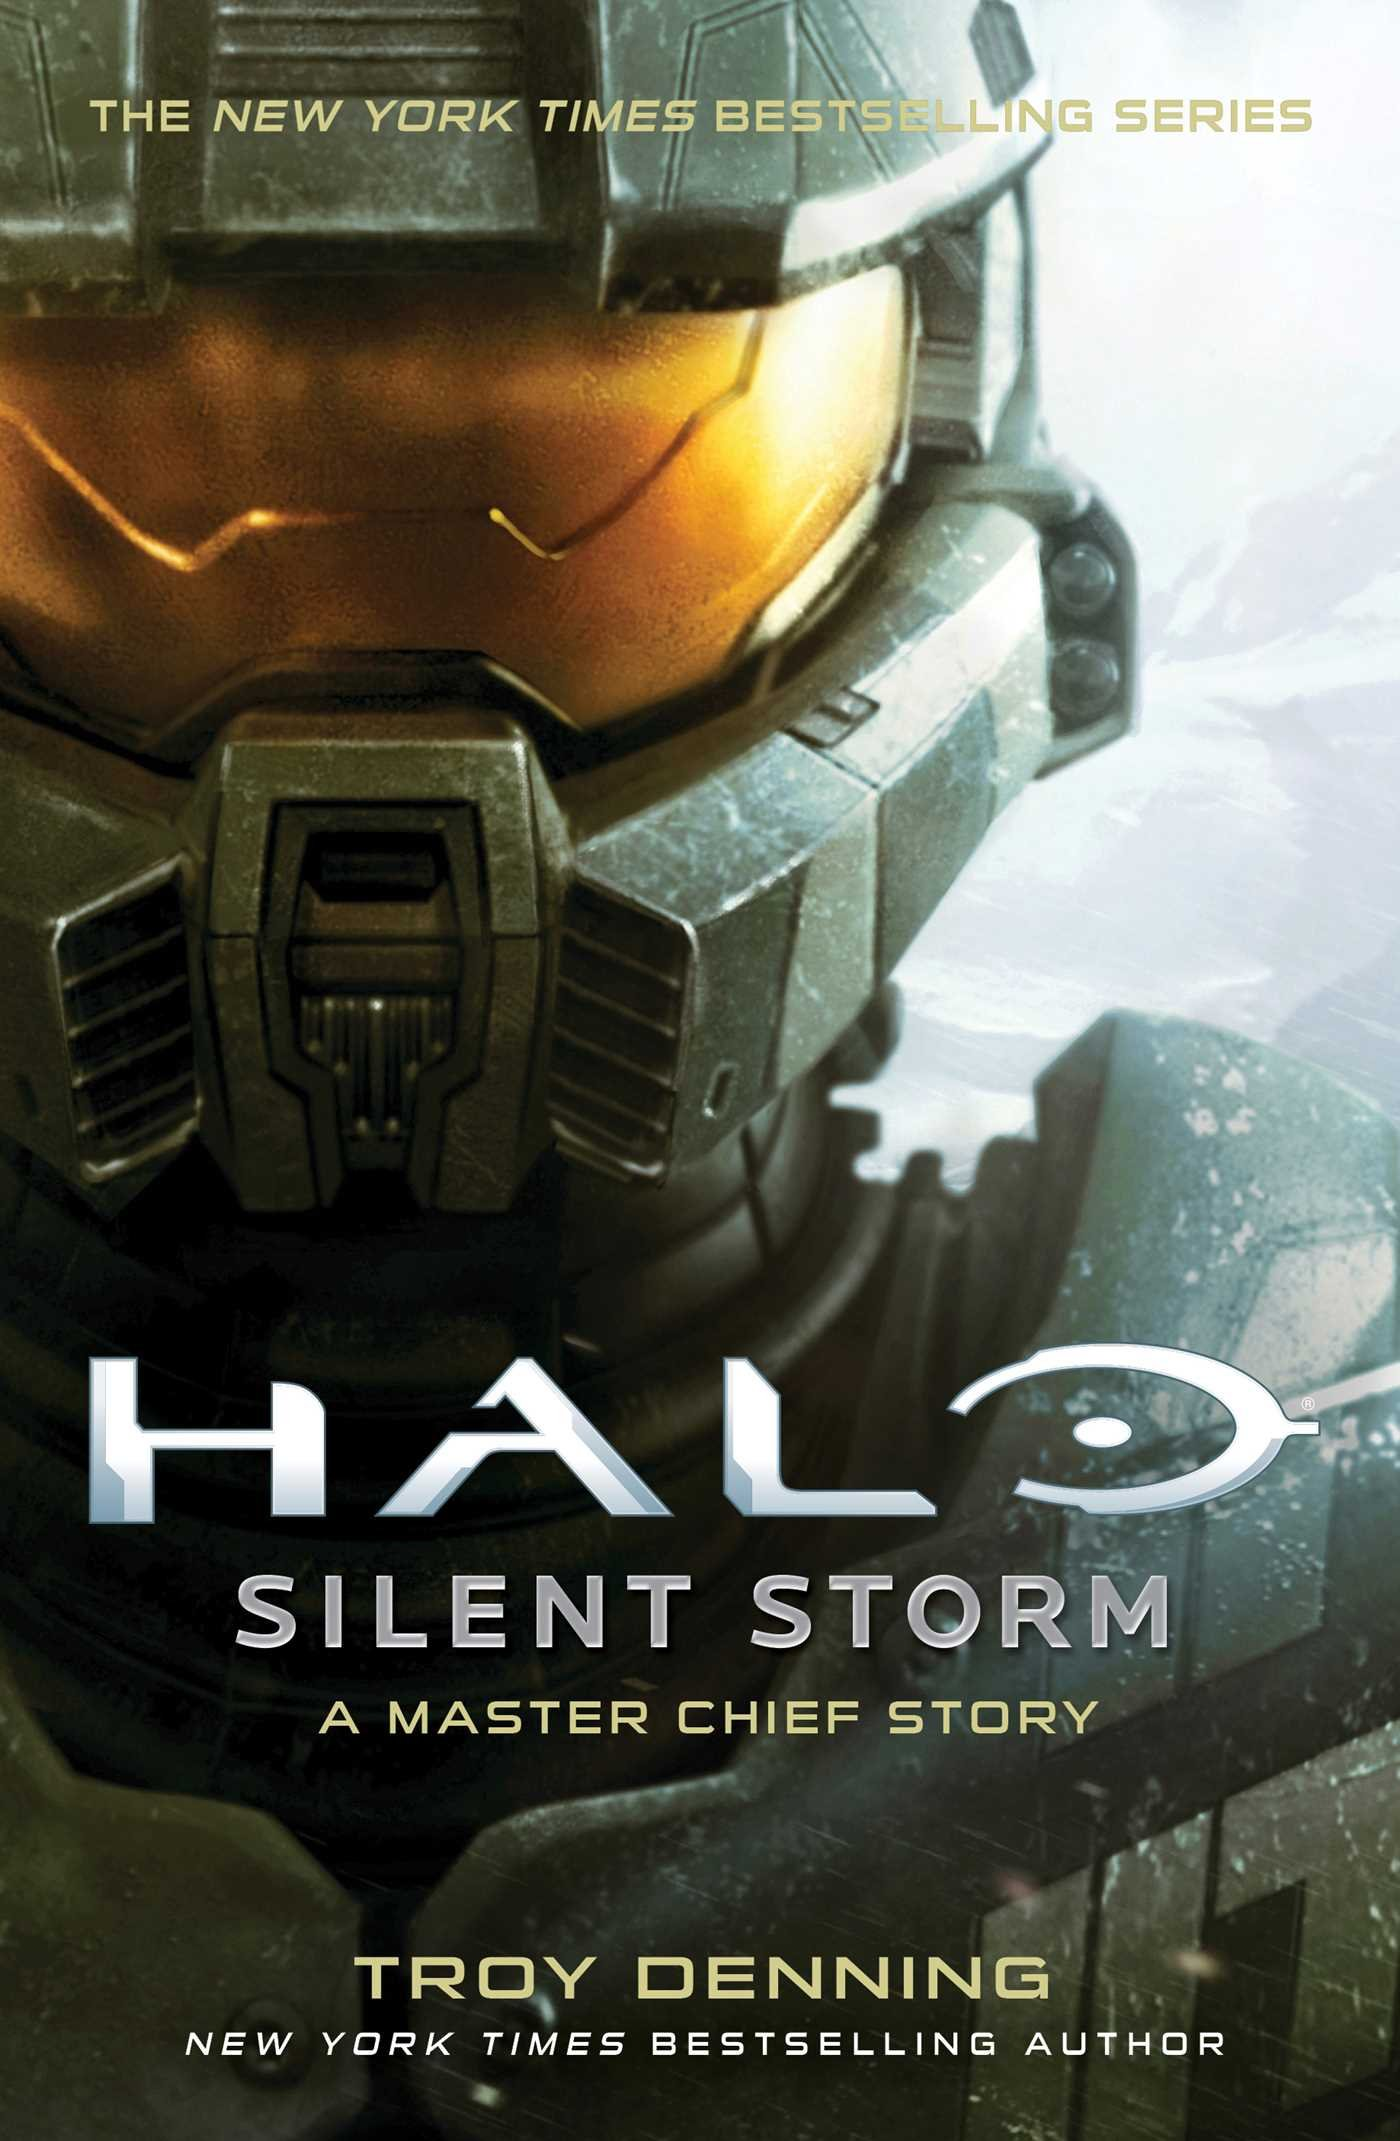 amazon halo silent storm a master chief story troy denning